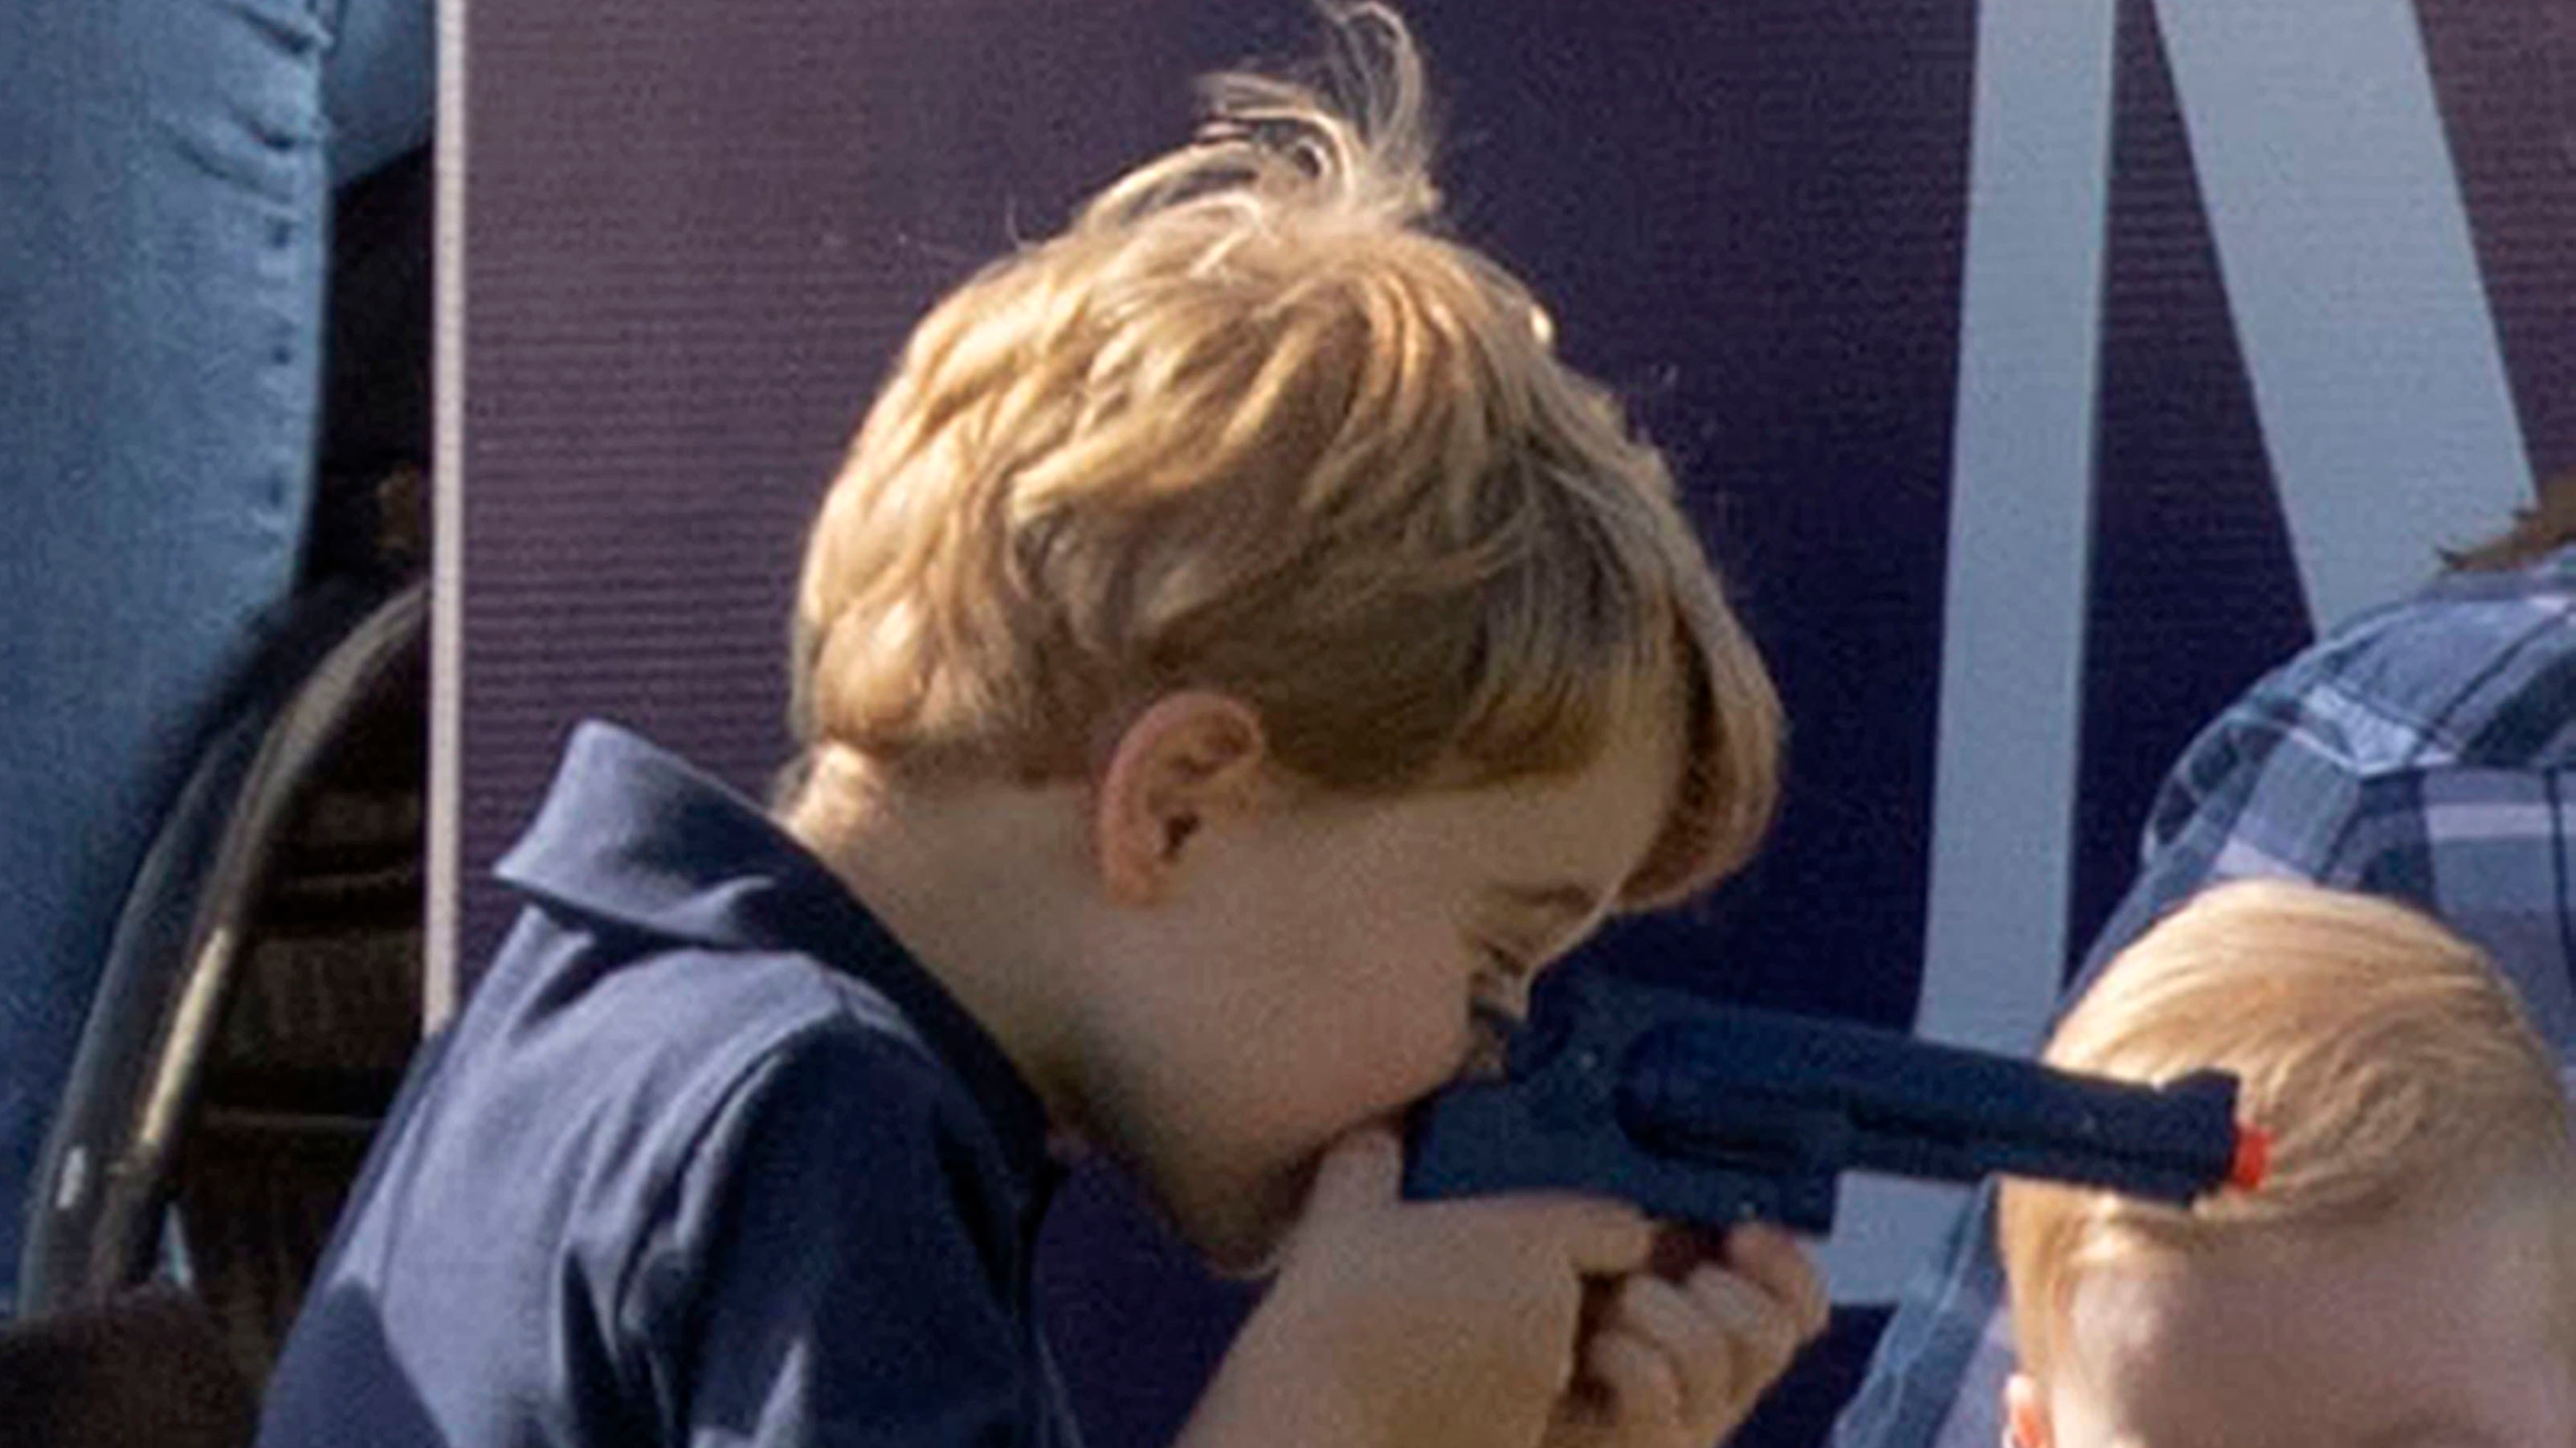 Some People Are Not Impressed That Prince George Was Allowed To Play With Toy Gun